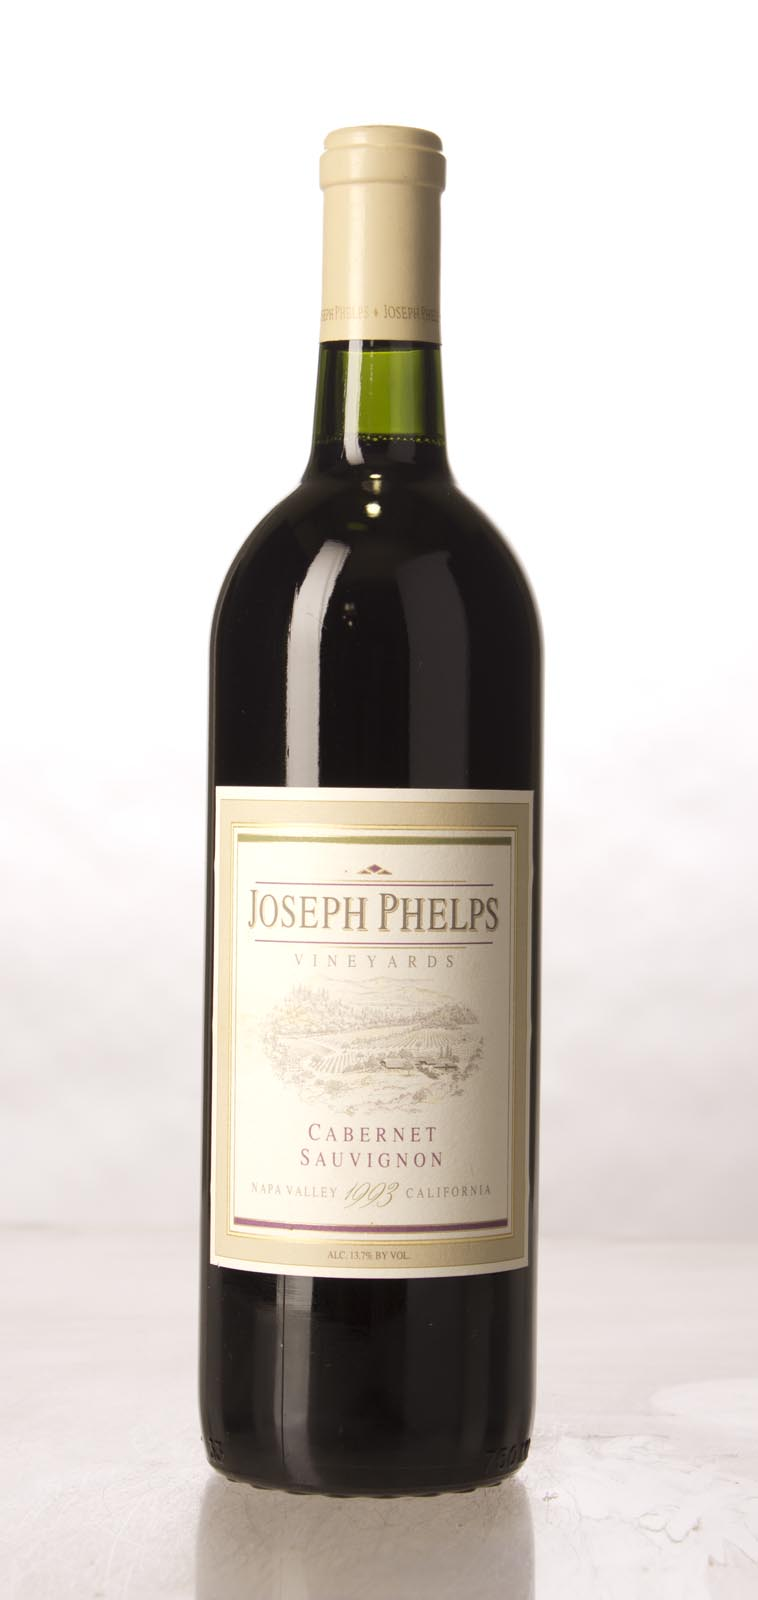 Joseph Phelps Cabernet Sauvignon Napa Valley 1993, 750mL (WA89) from The BPW - Merchants of rare and fine wines.